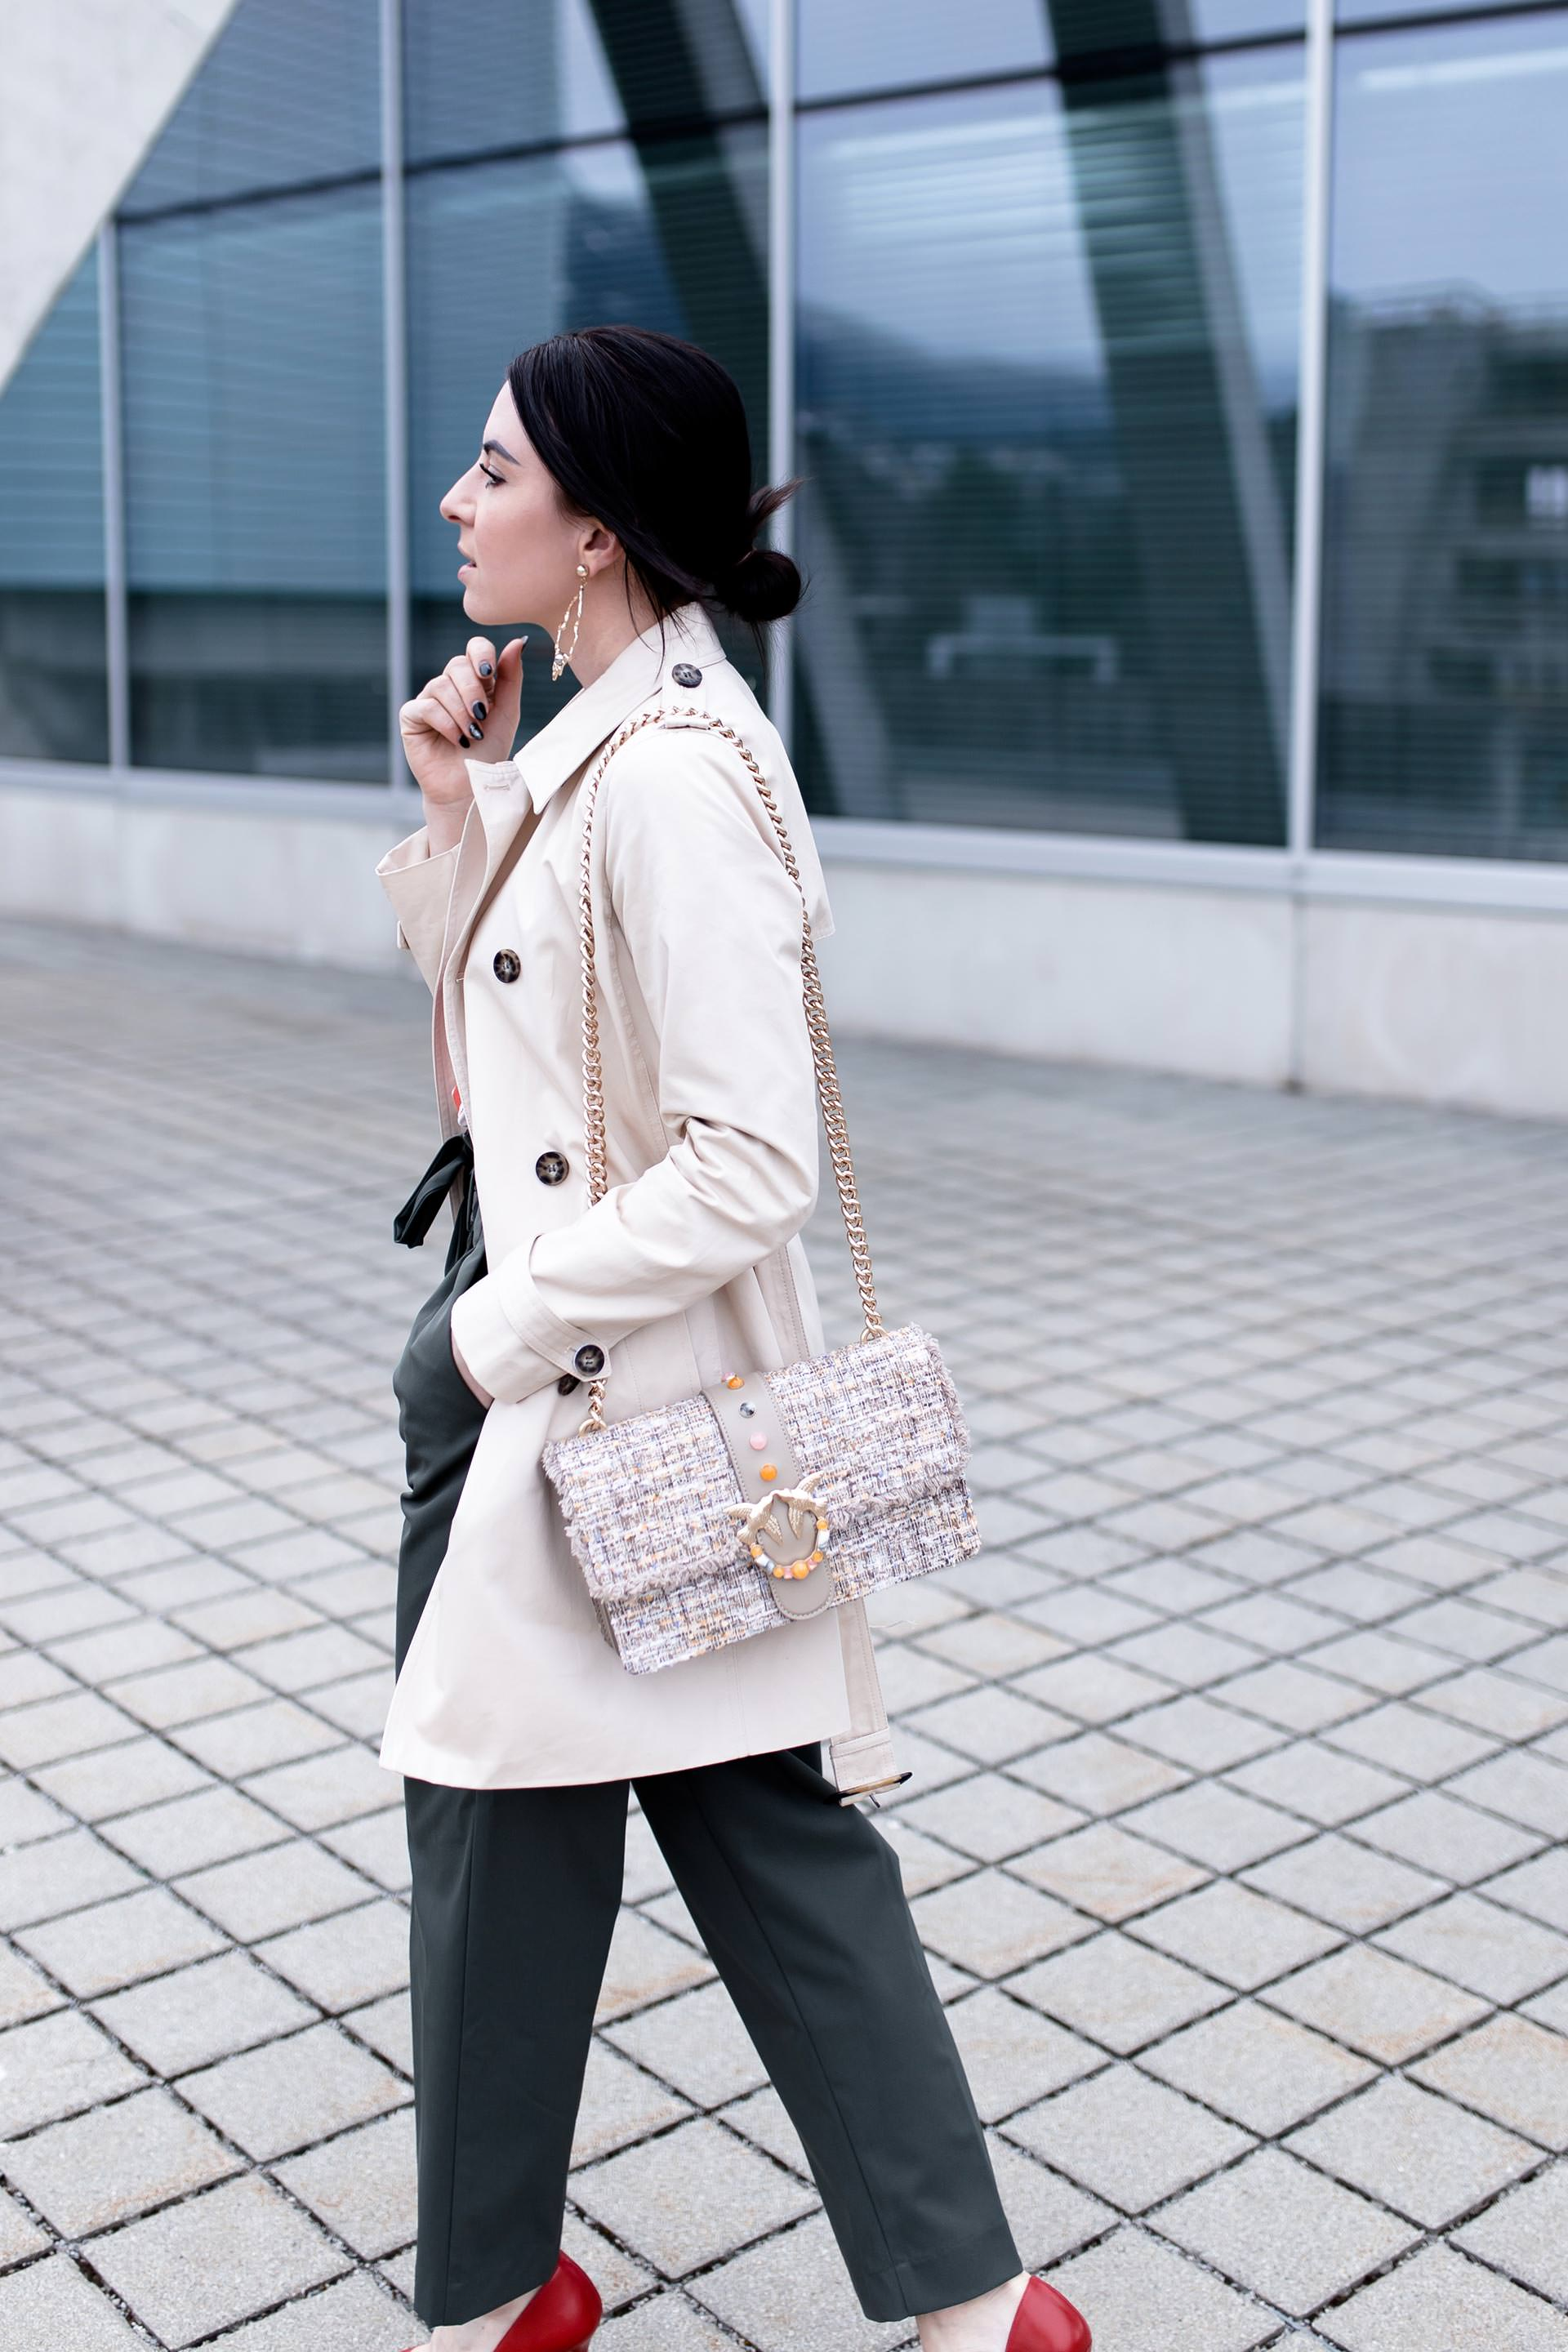 Paperbag Hose kombinieren, Trenchcoat kombinieren, Frühlingsoutfit mit Paperbag Hose, Alltagsoutfit mit Pumps, Boucle Tweed Bag, Streetstyle, Fashion Blogger, www.whoismocca.com